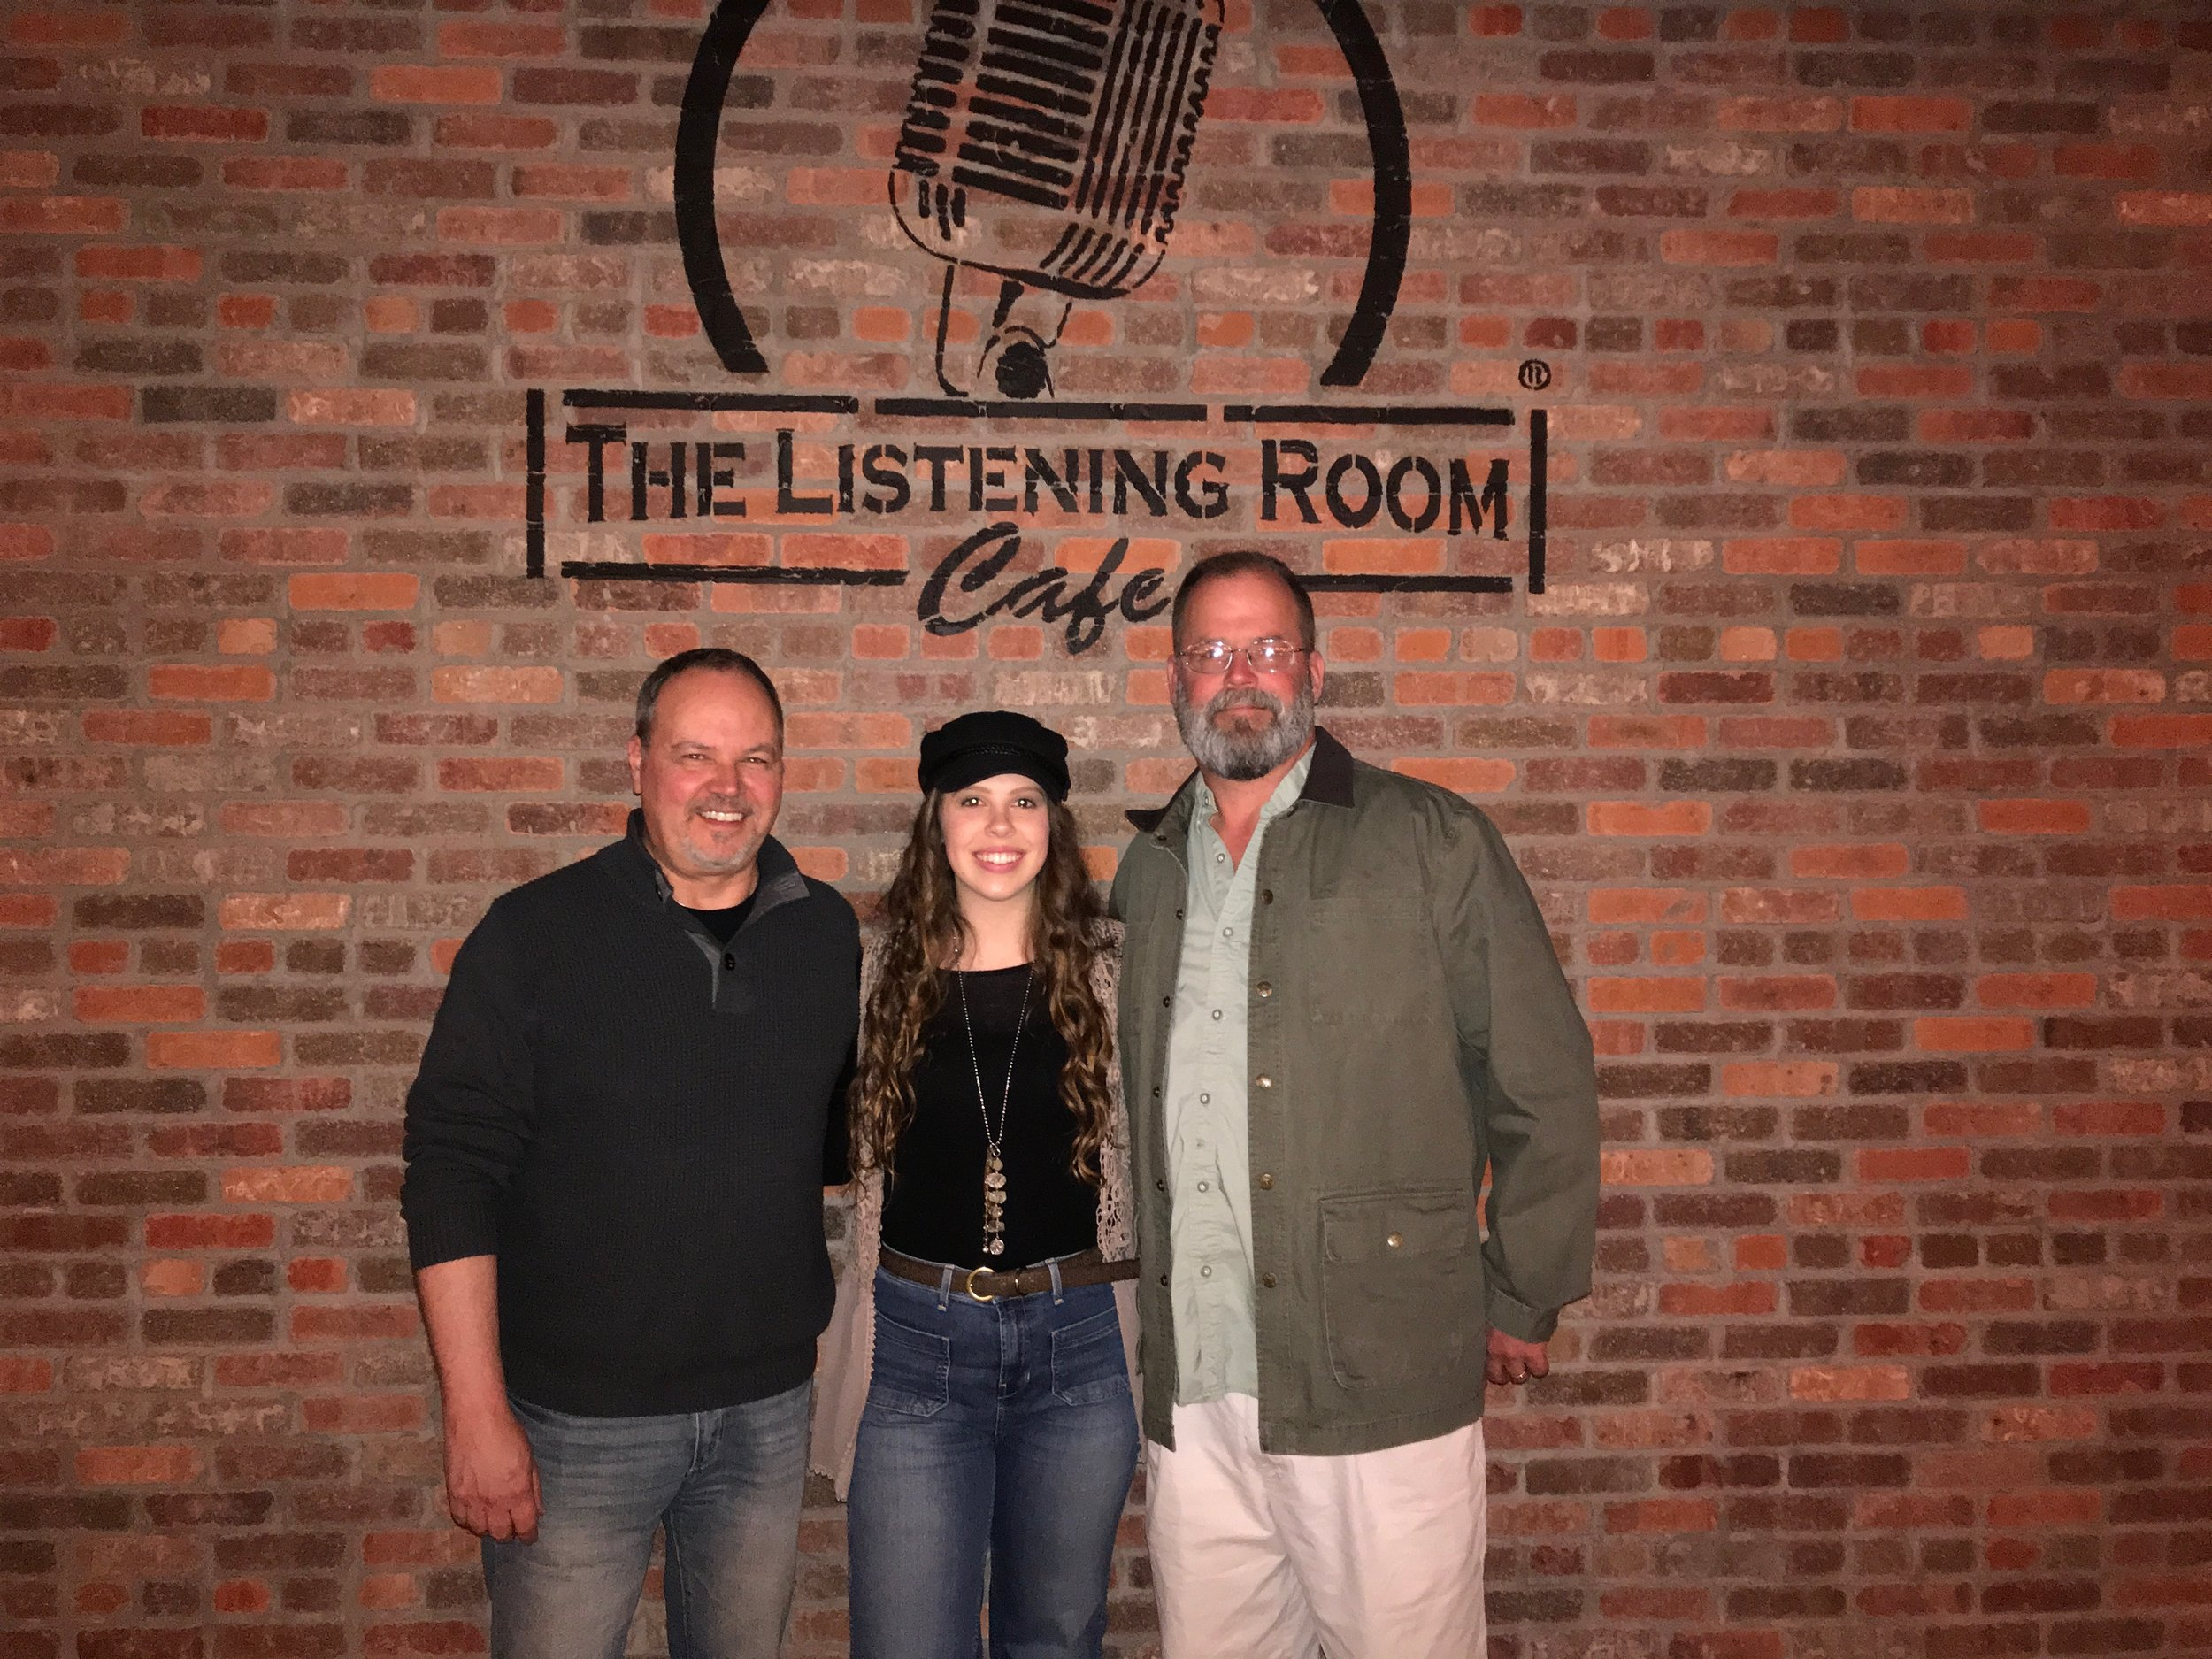 My Dad (right) and Paul Graham (left) after my first performance at The Listening Room Café - March 4th, 2019